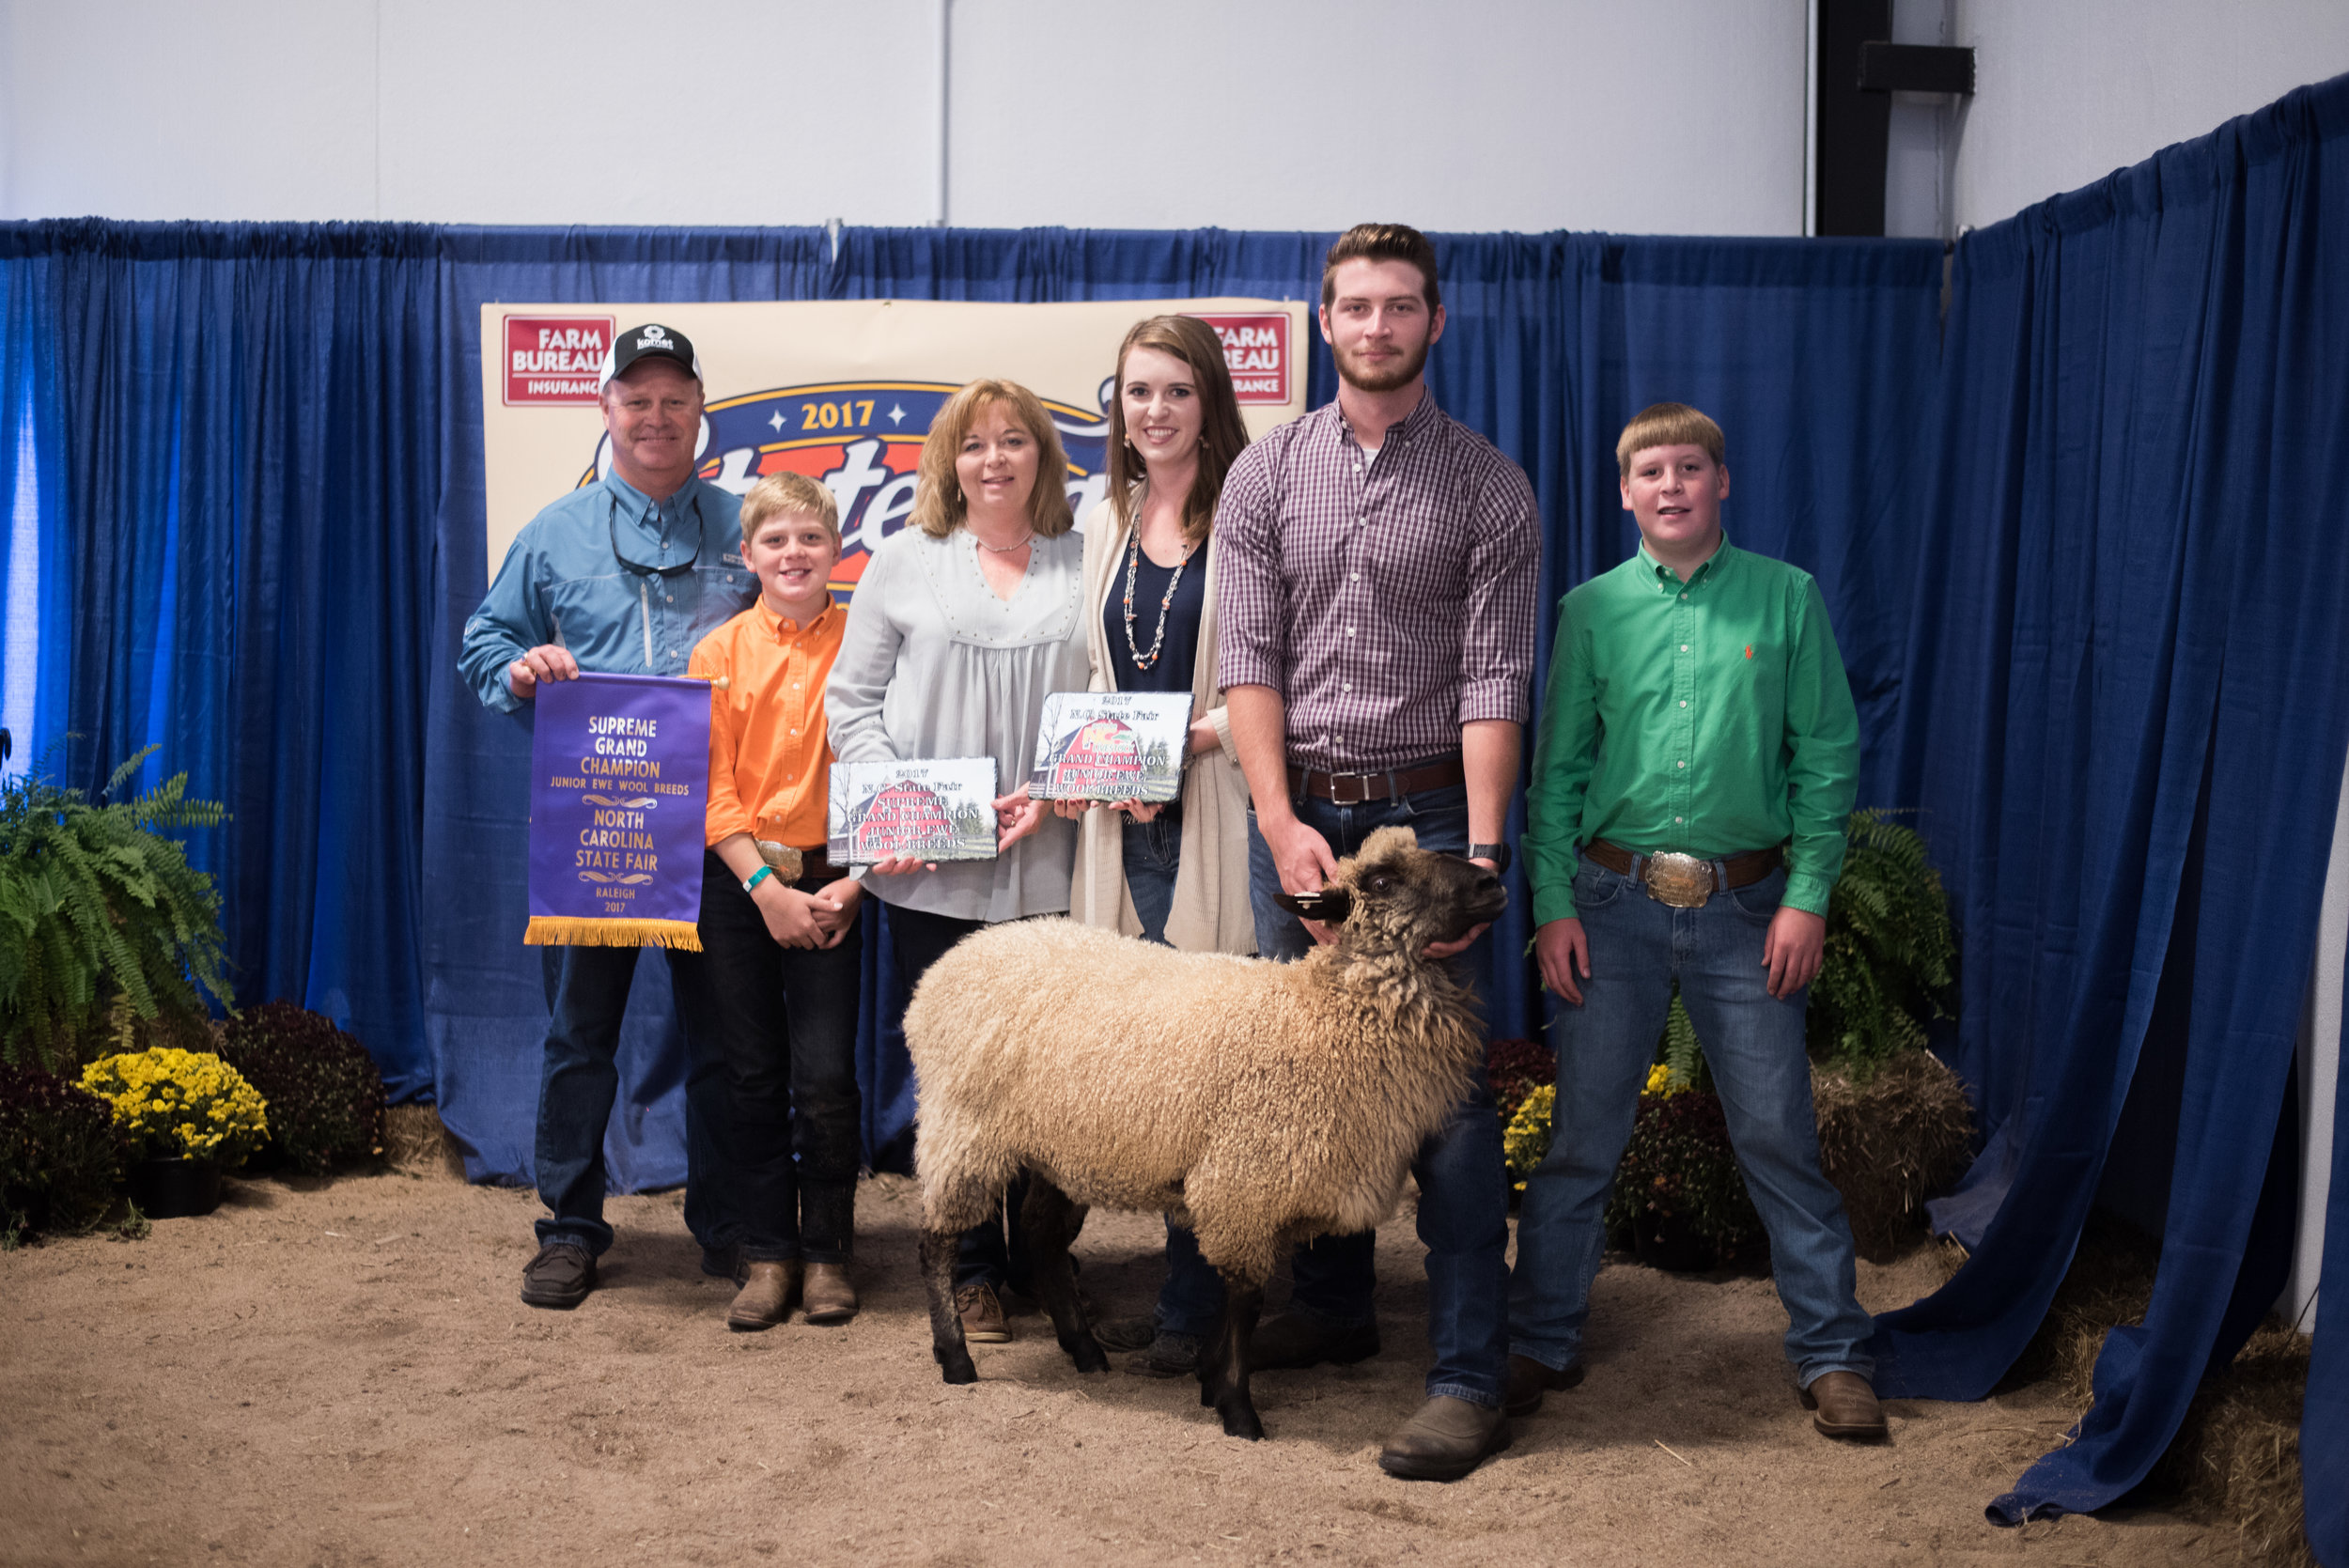 Supreme Grand Champion Jr. Wool Breed Ewe - 2017 NC State Fair